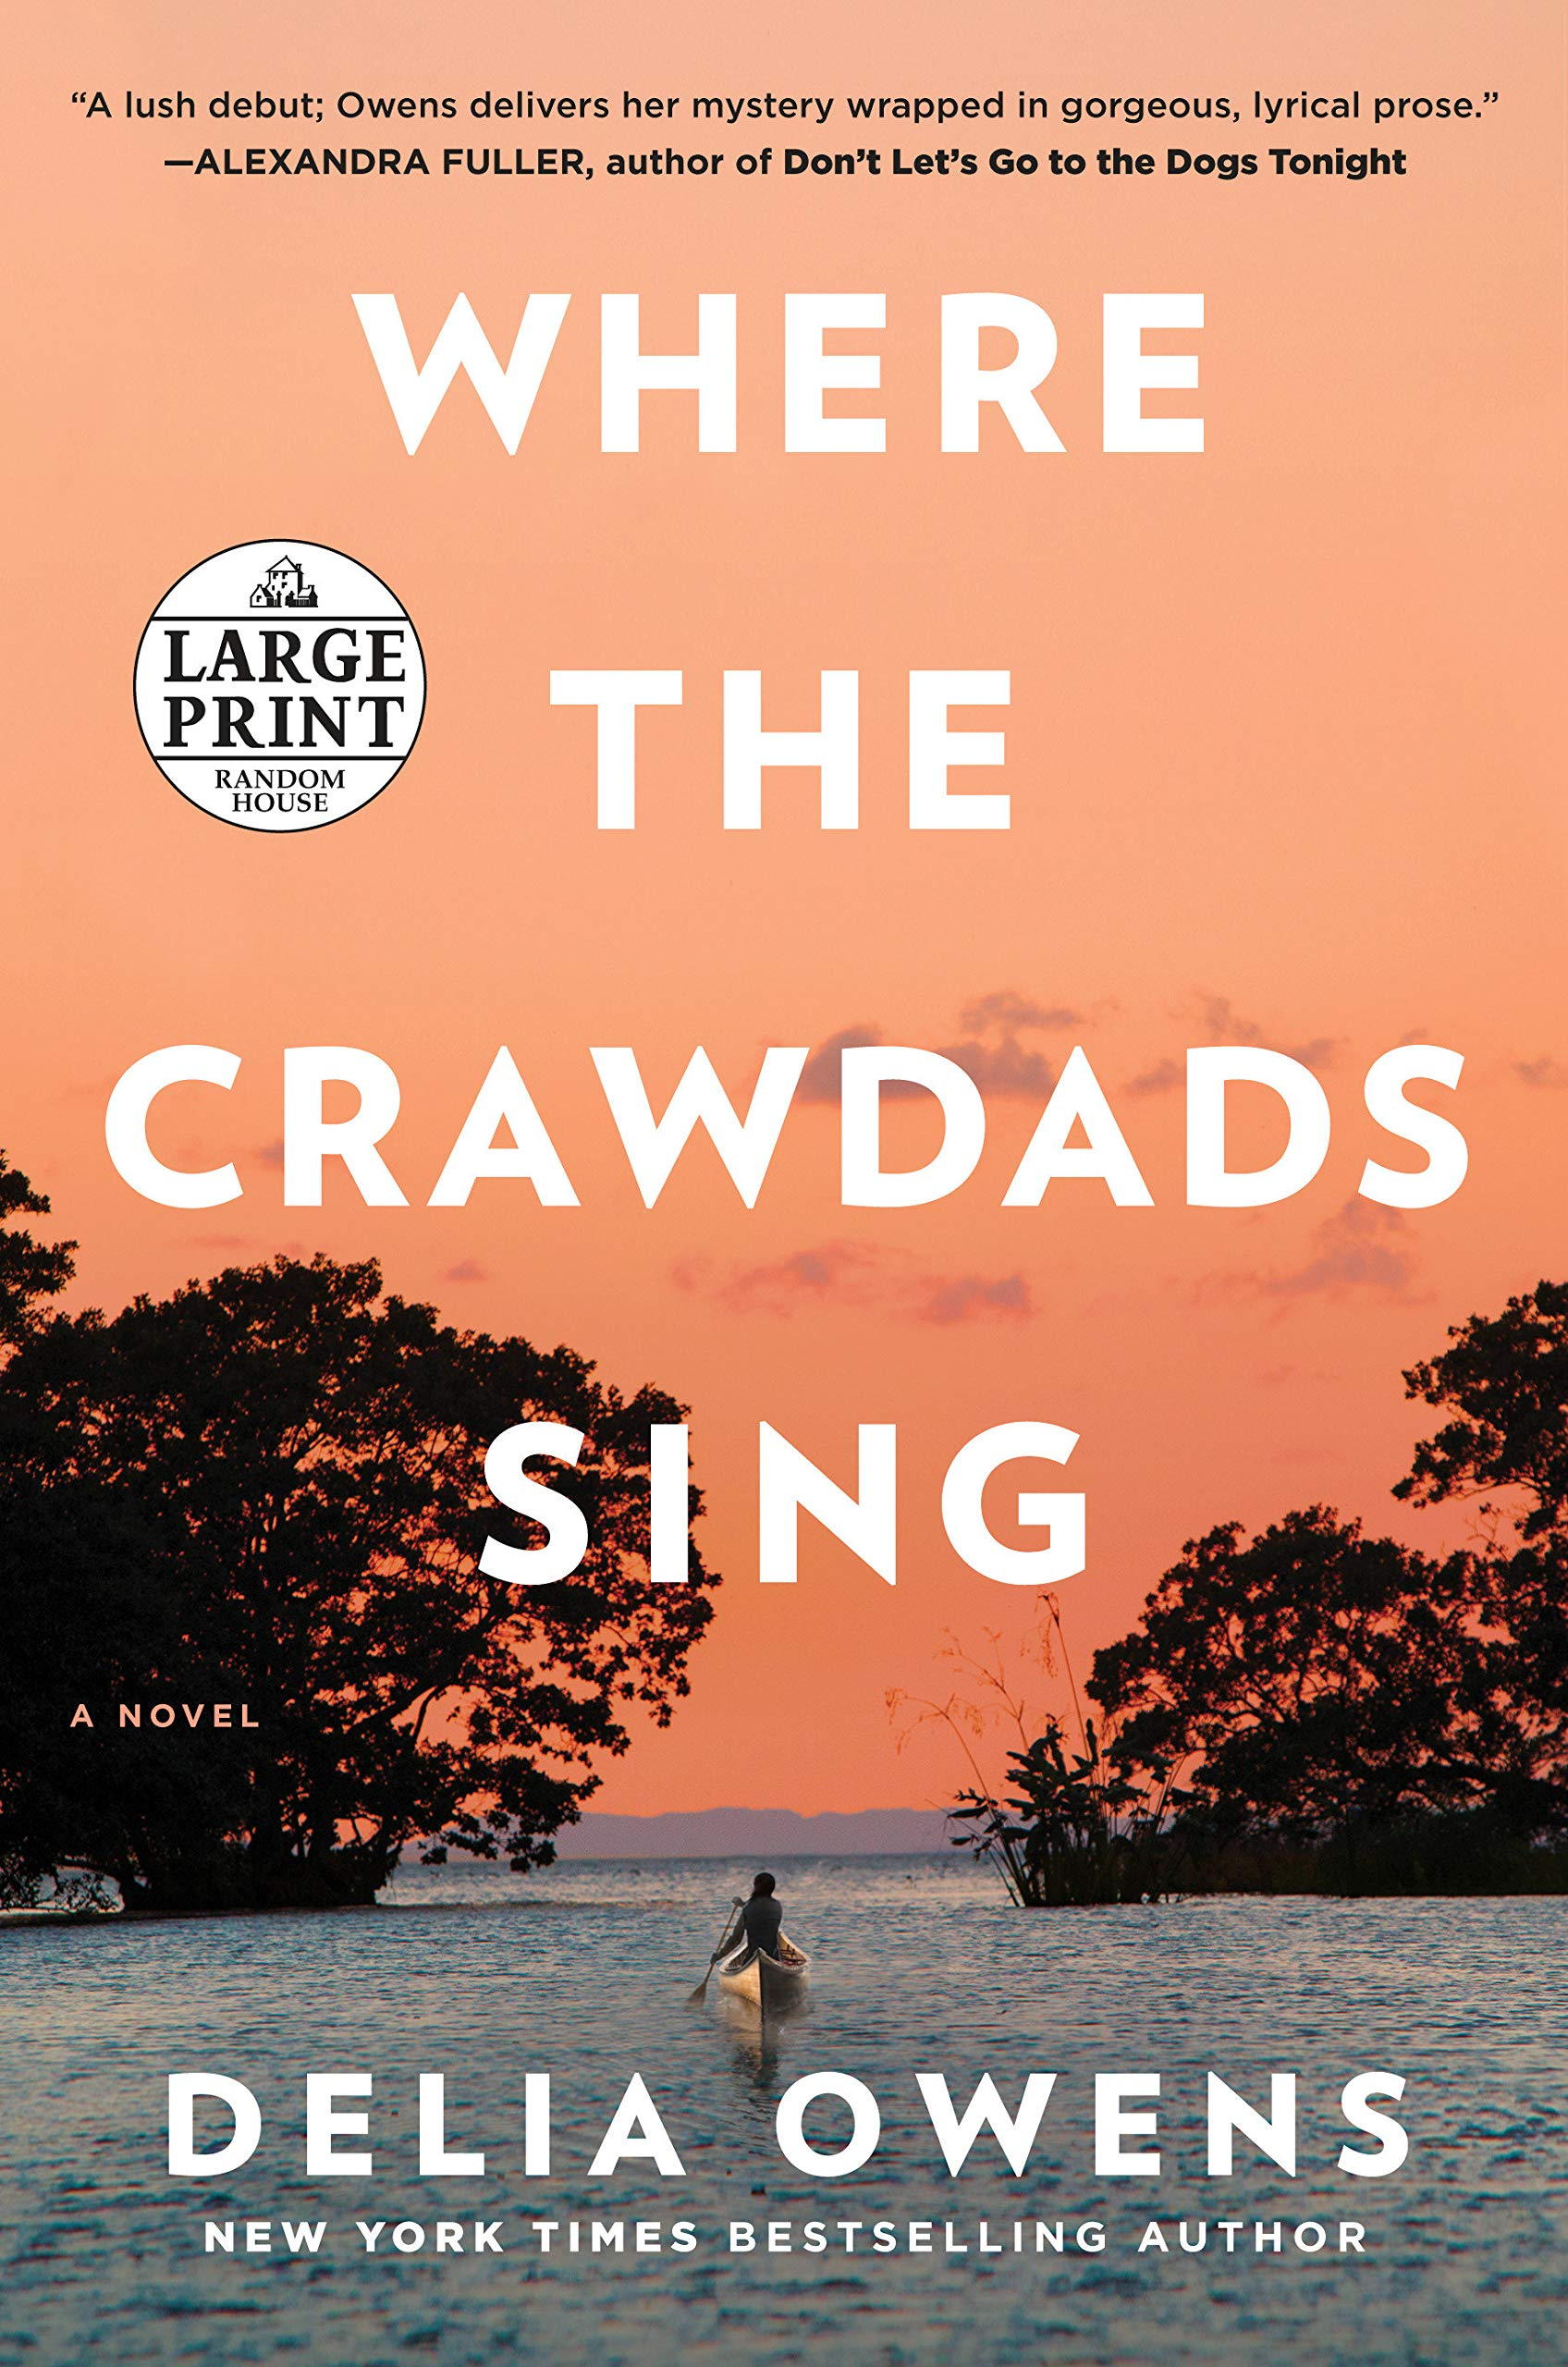 Where the crawdads sing - Couverture